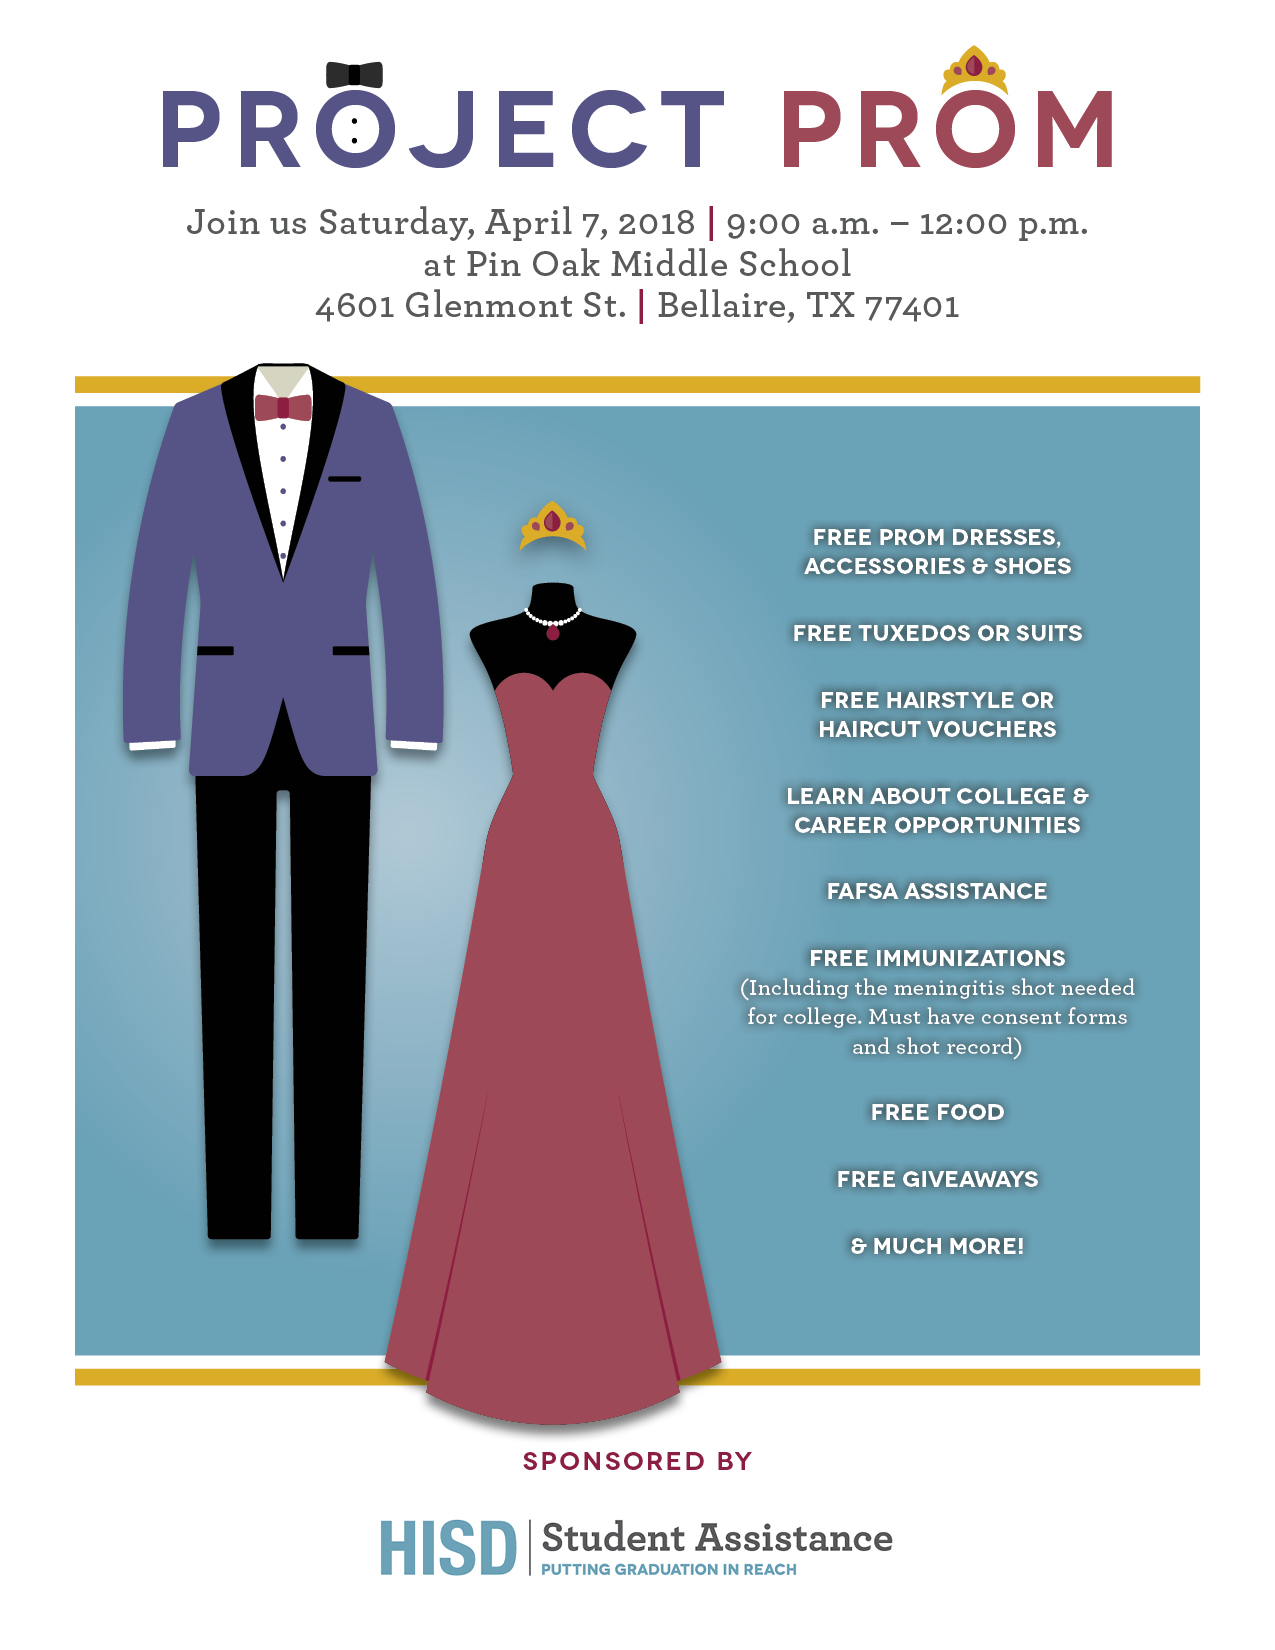 abc2bf6f383 The Houston Independent School District Student Assistance Department will  provide free dresses